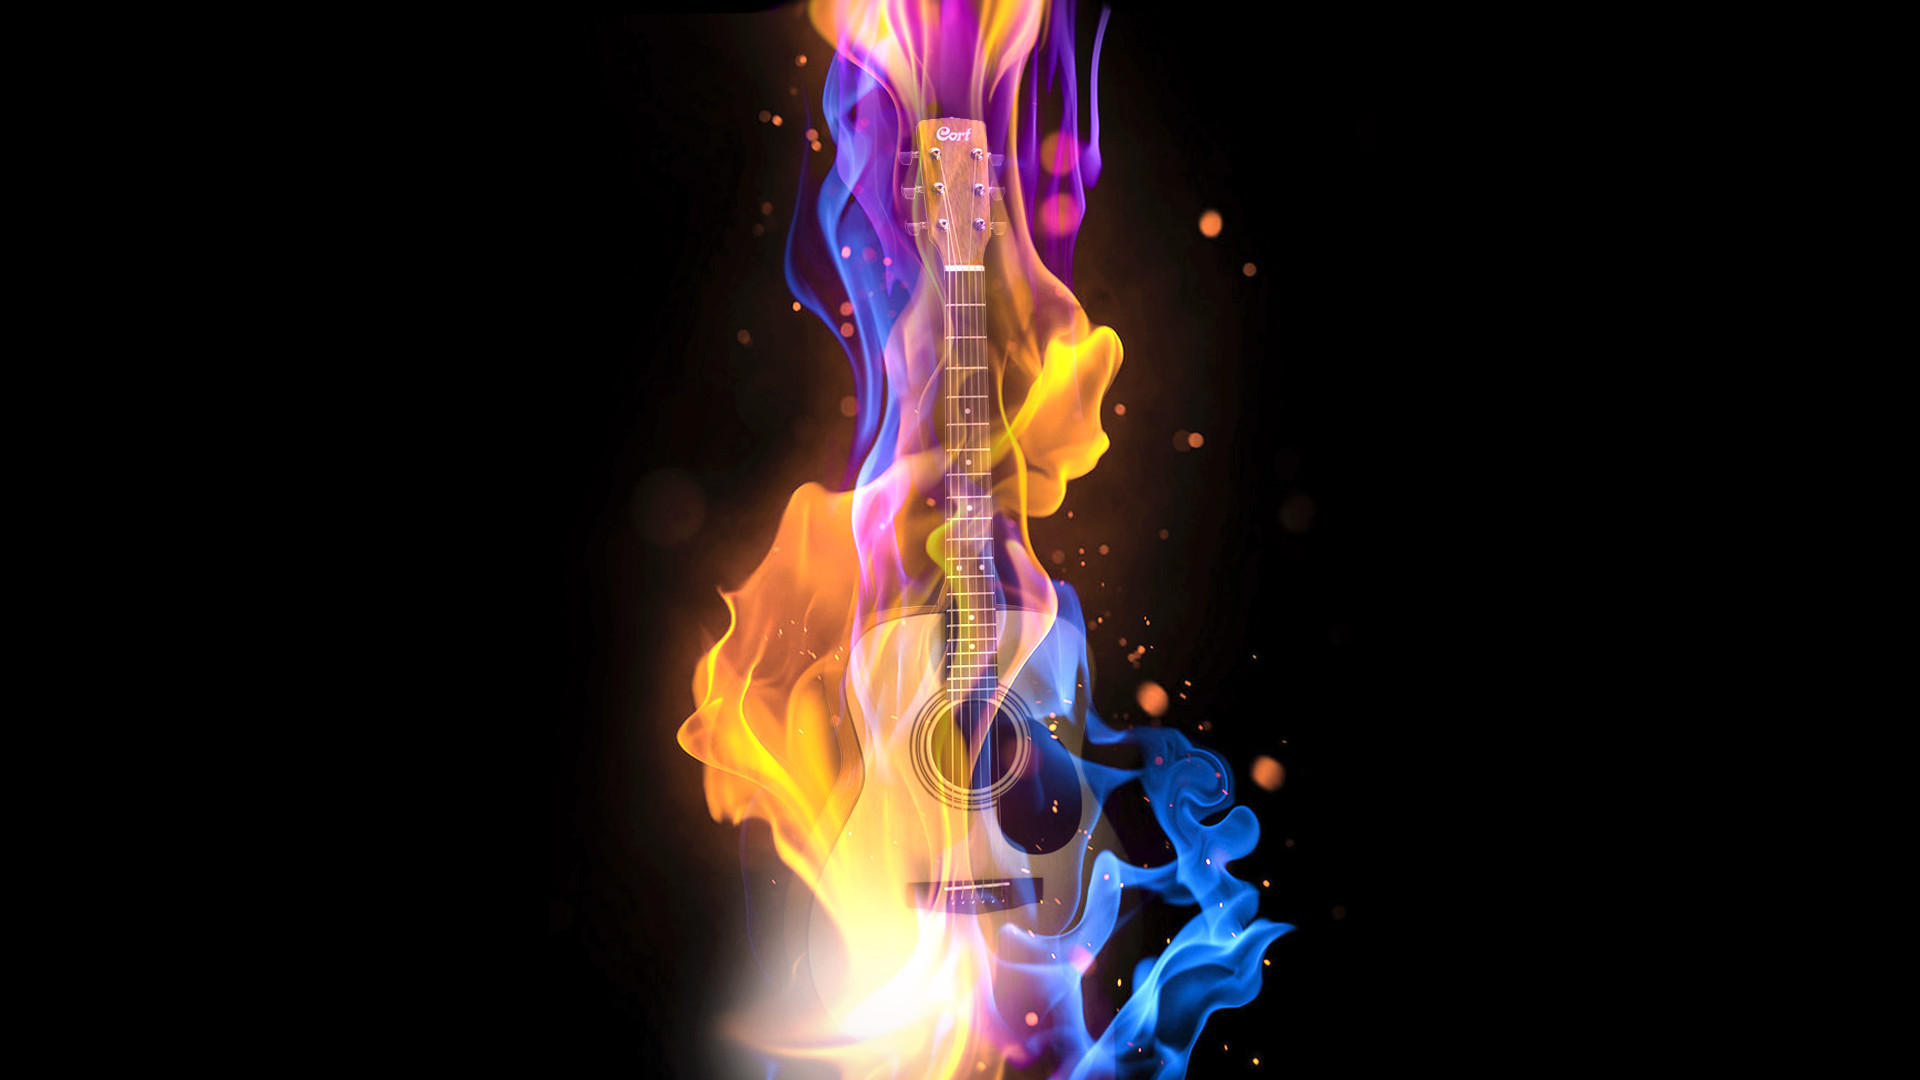 1920x1080 ... music, abstract, guitar, fire, digital art, particle, hd, wallpaper